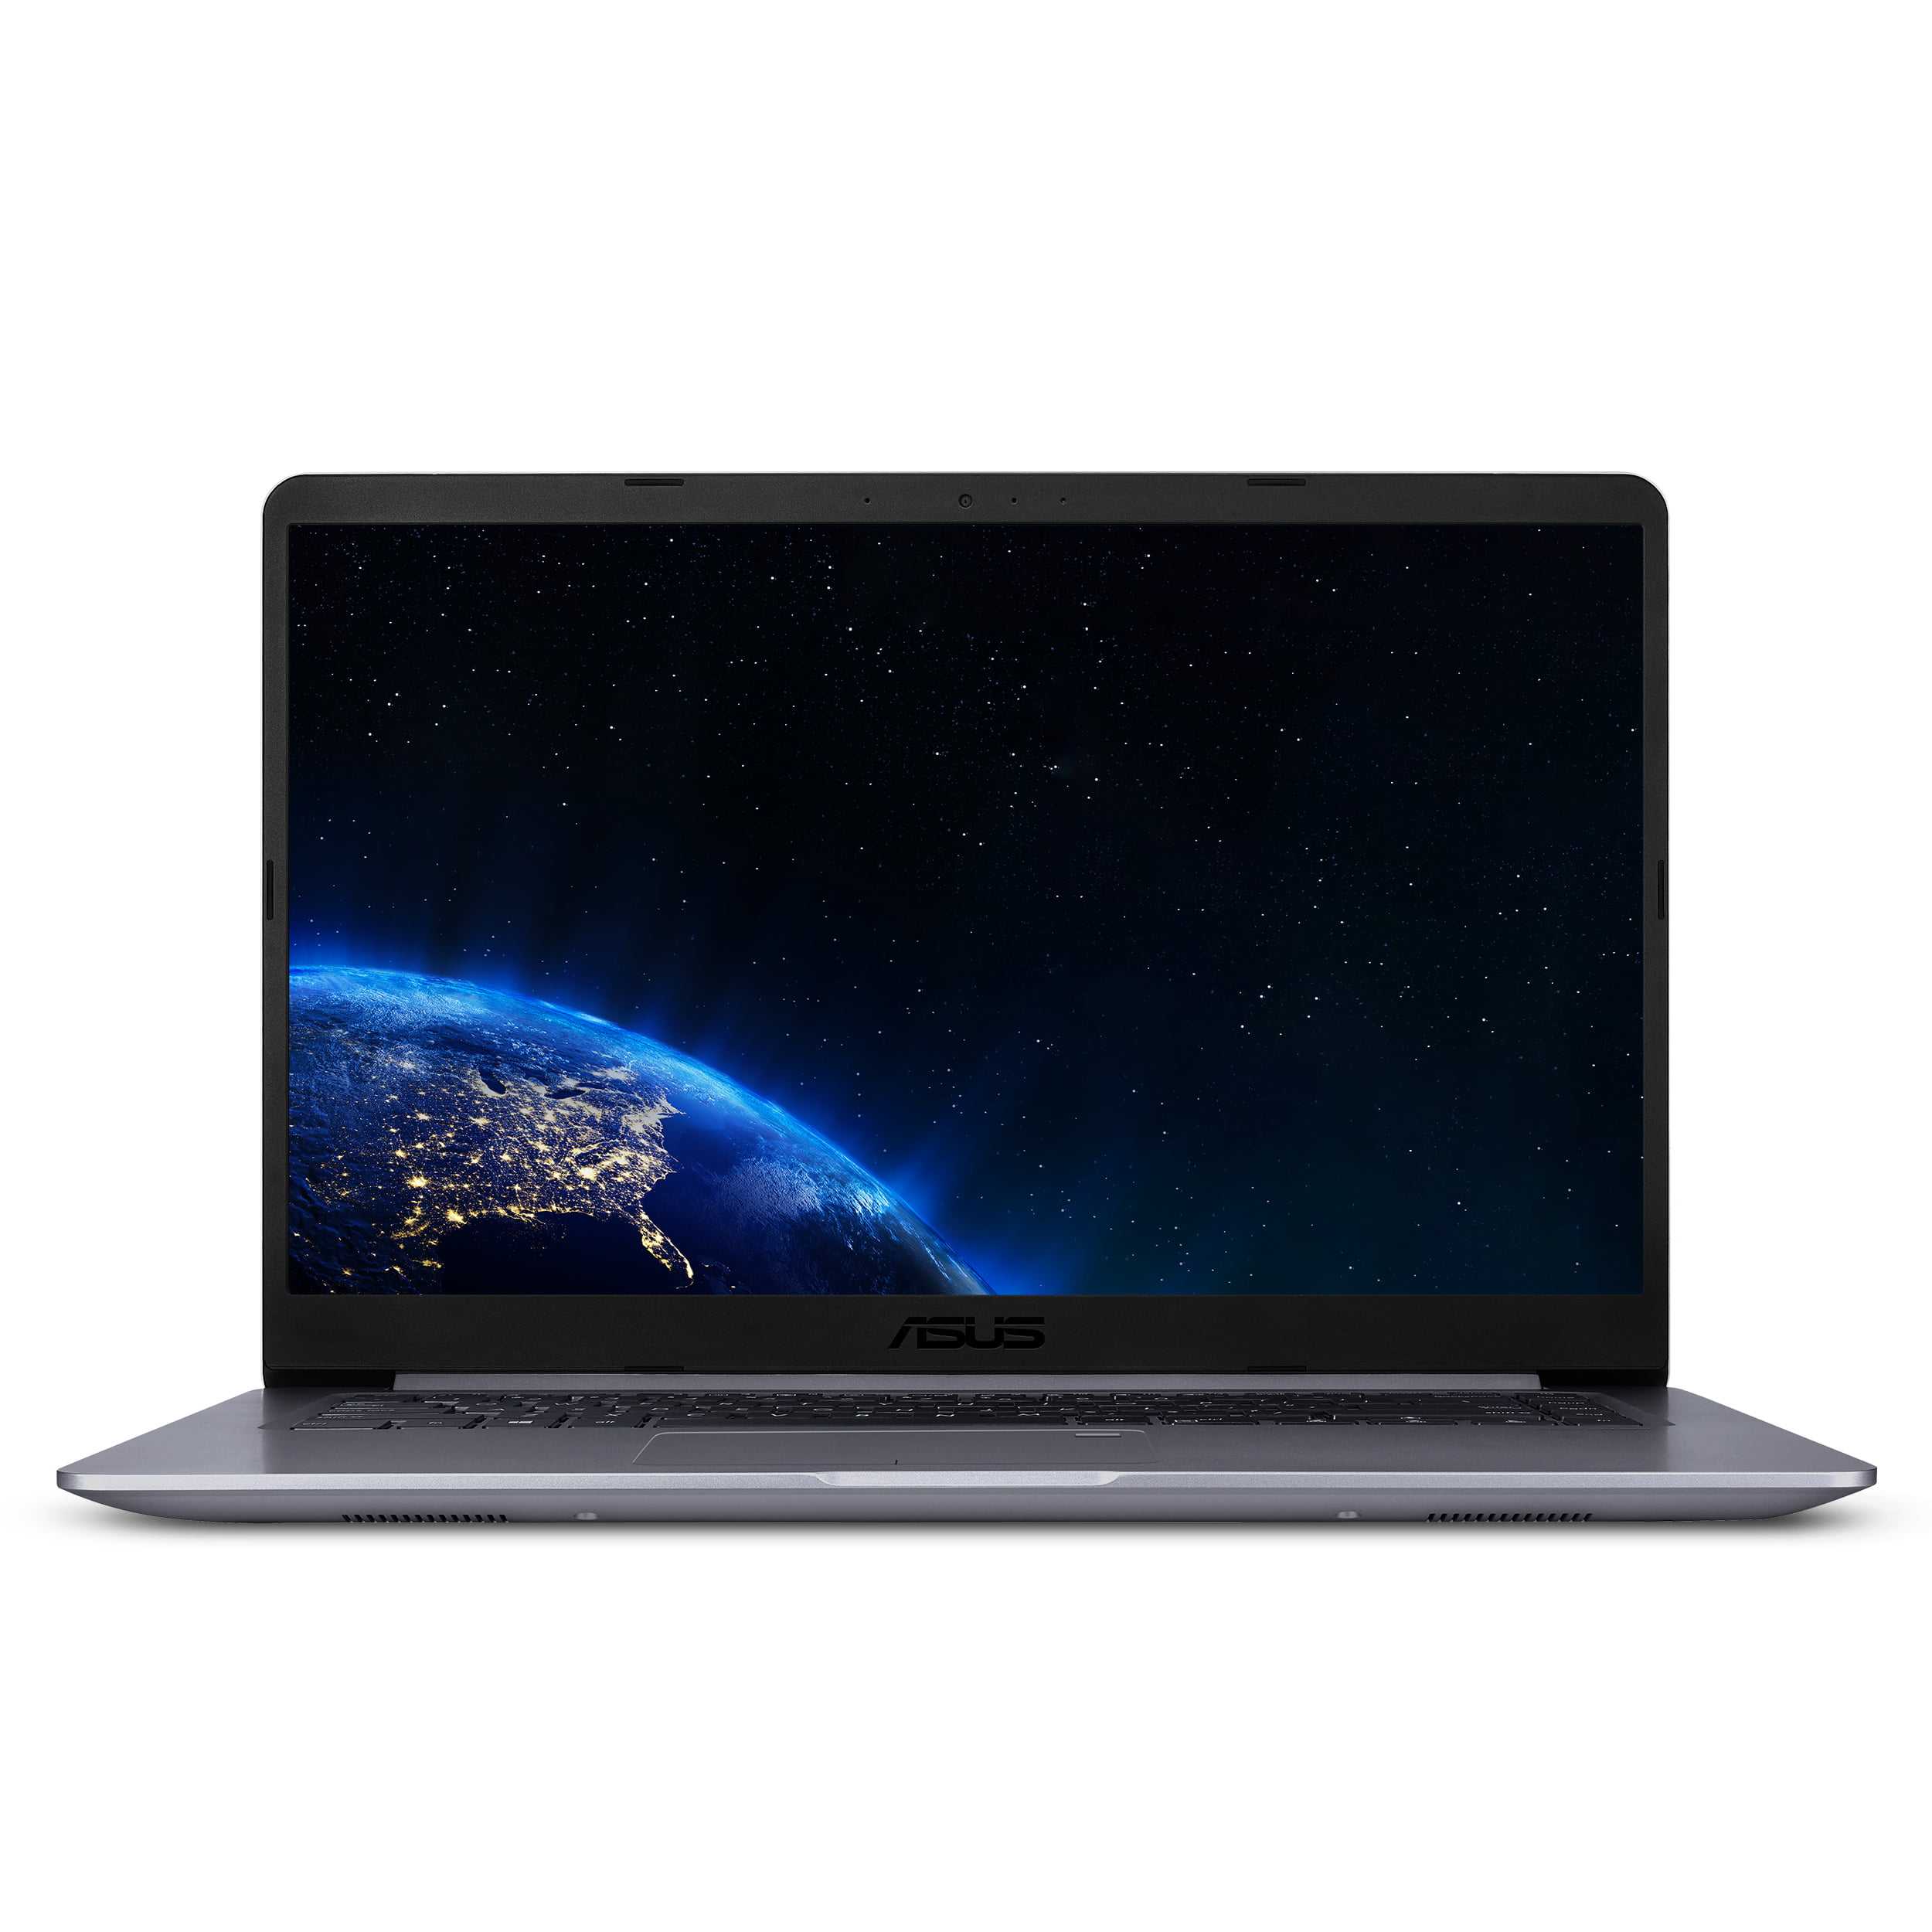 ASUS VivoBook F510QA 15.6? WideView FHD Laptop, AMD Quad Core A12-9720P, 4GB DDR4, 128GB SSD, Windows 10 - Walmart.com